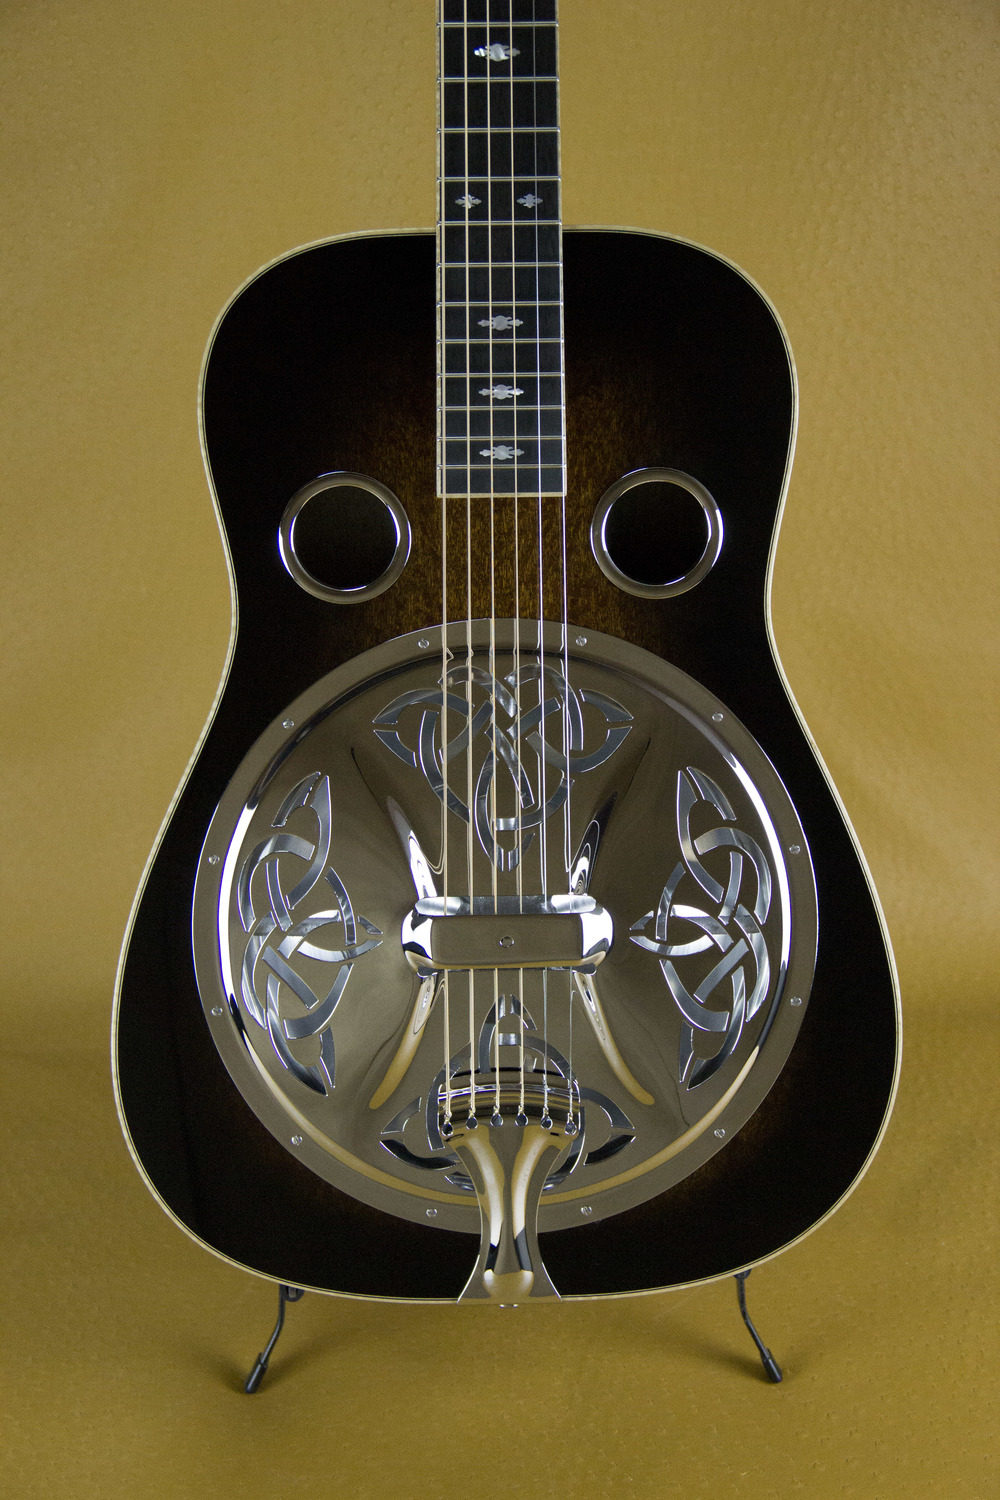 Celtic Knot™ Coverplate on Beard E Model